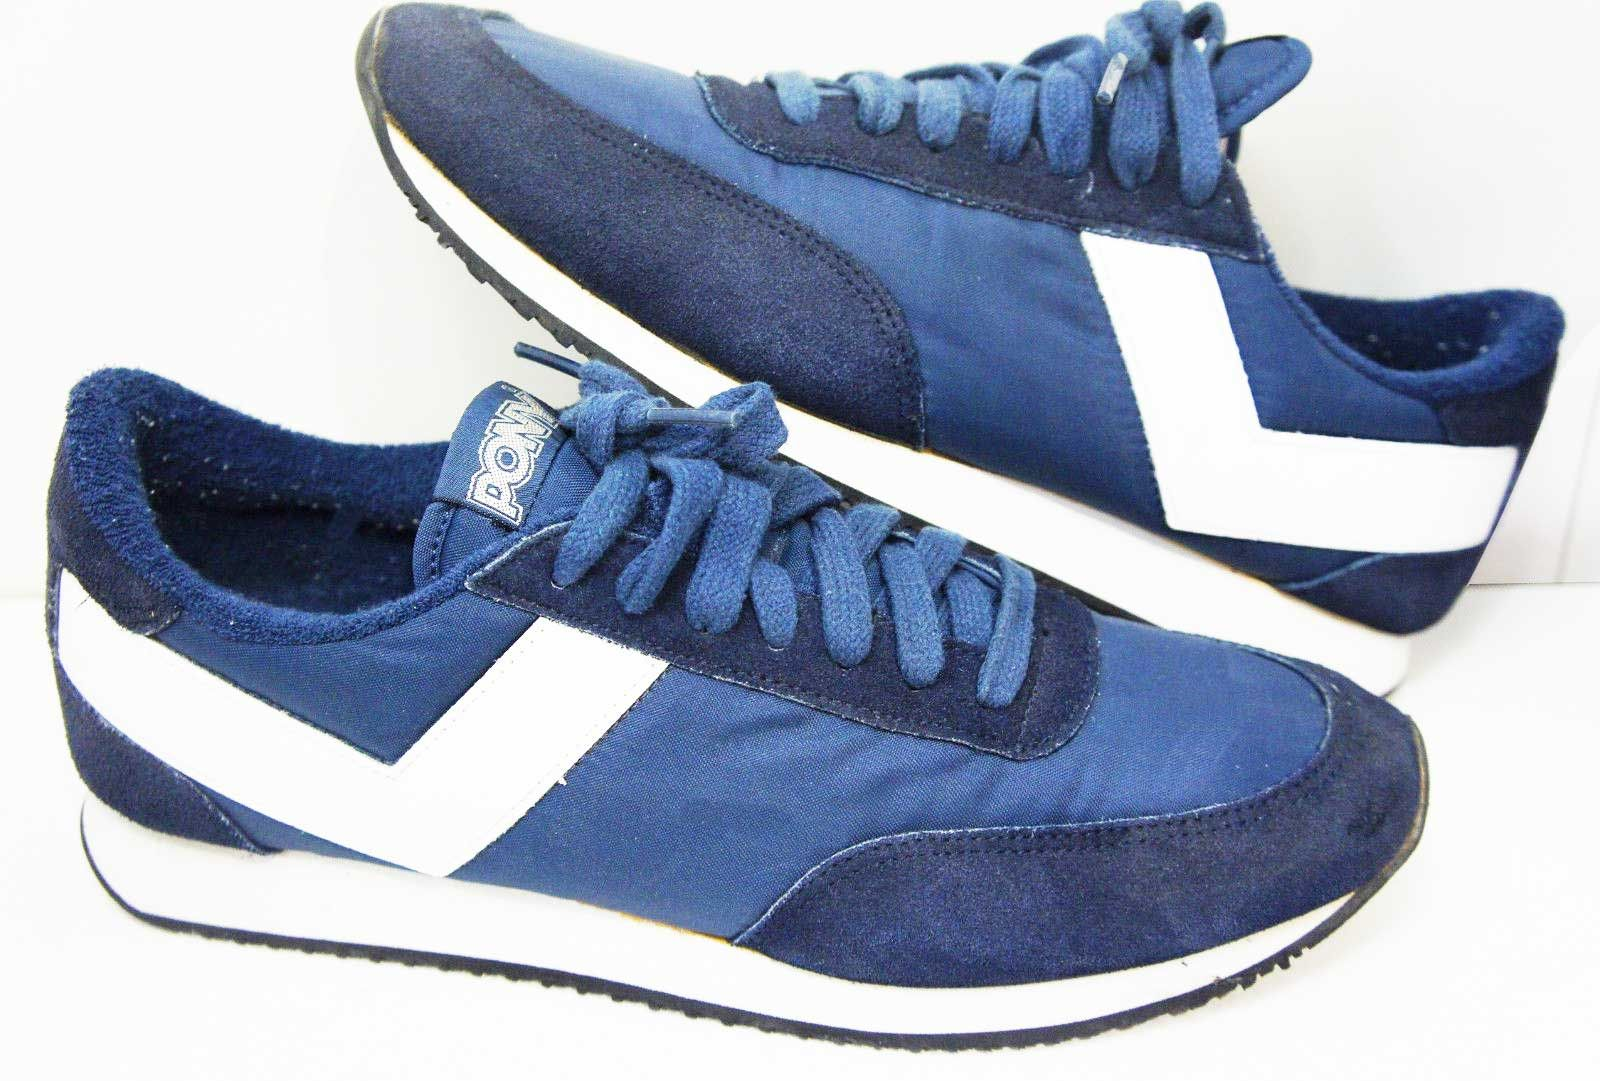 0895e6b7e321 PONY vintage 80s running shoes / sneakers | The Deffest | Sneaks ...